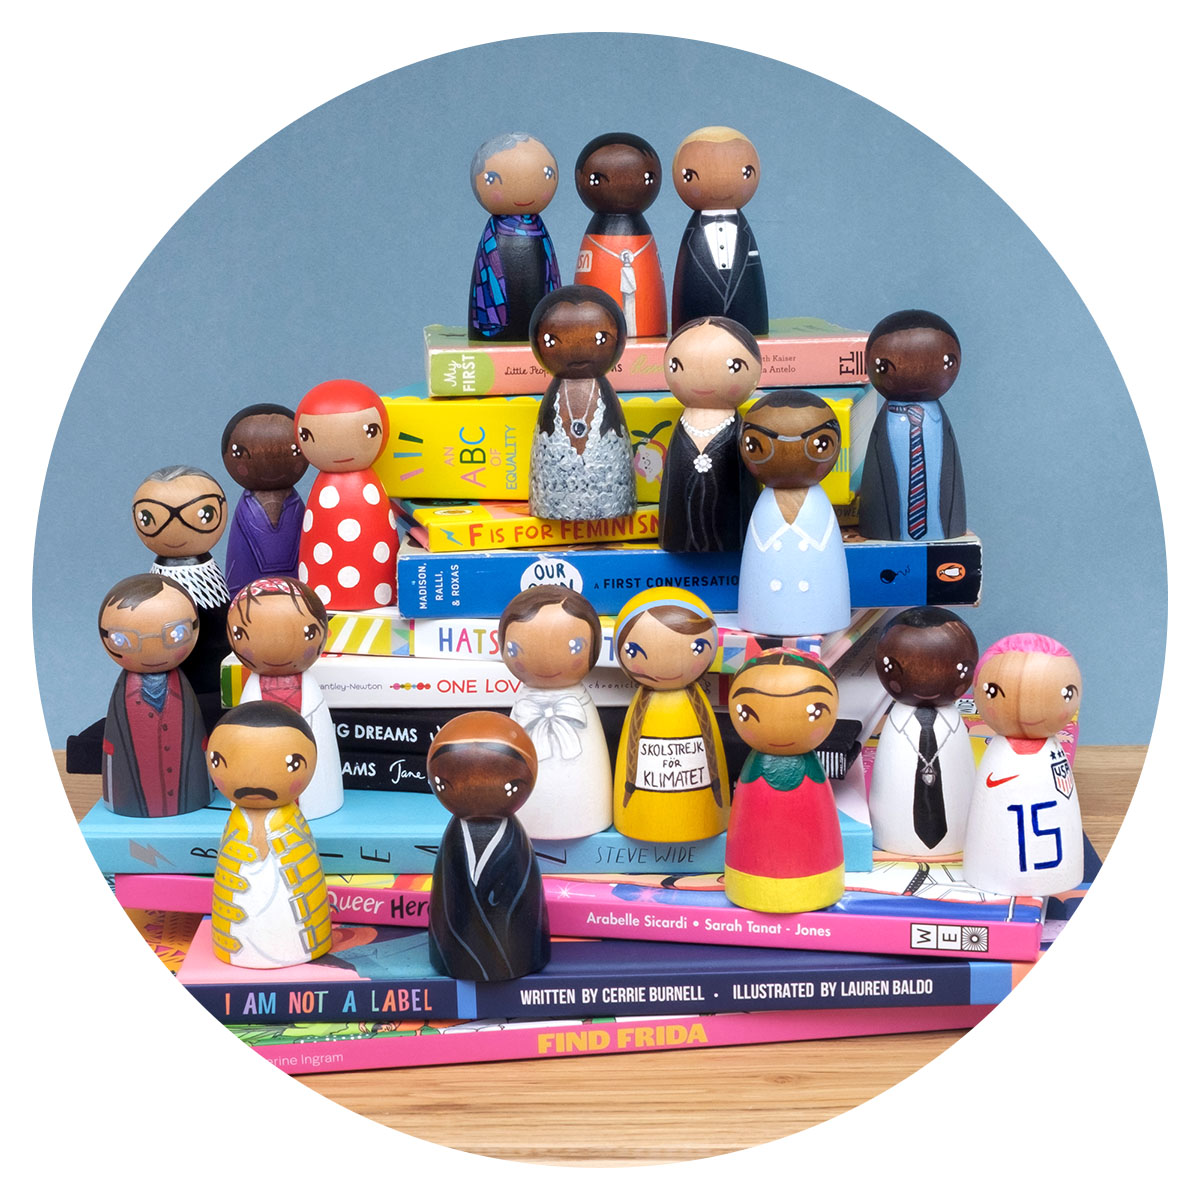 Peggy Dollface wooden peg dolls painted by hand of inspirational people in history, sit on top of a pile of books